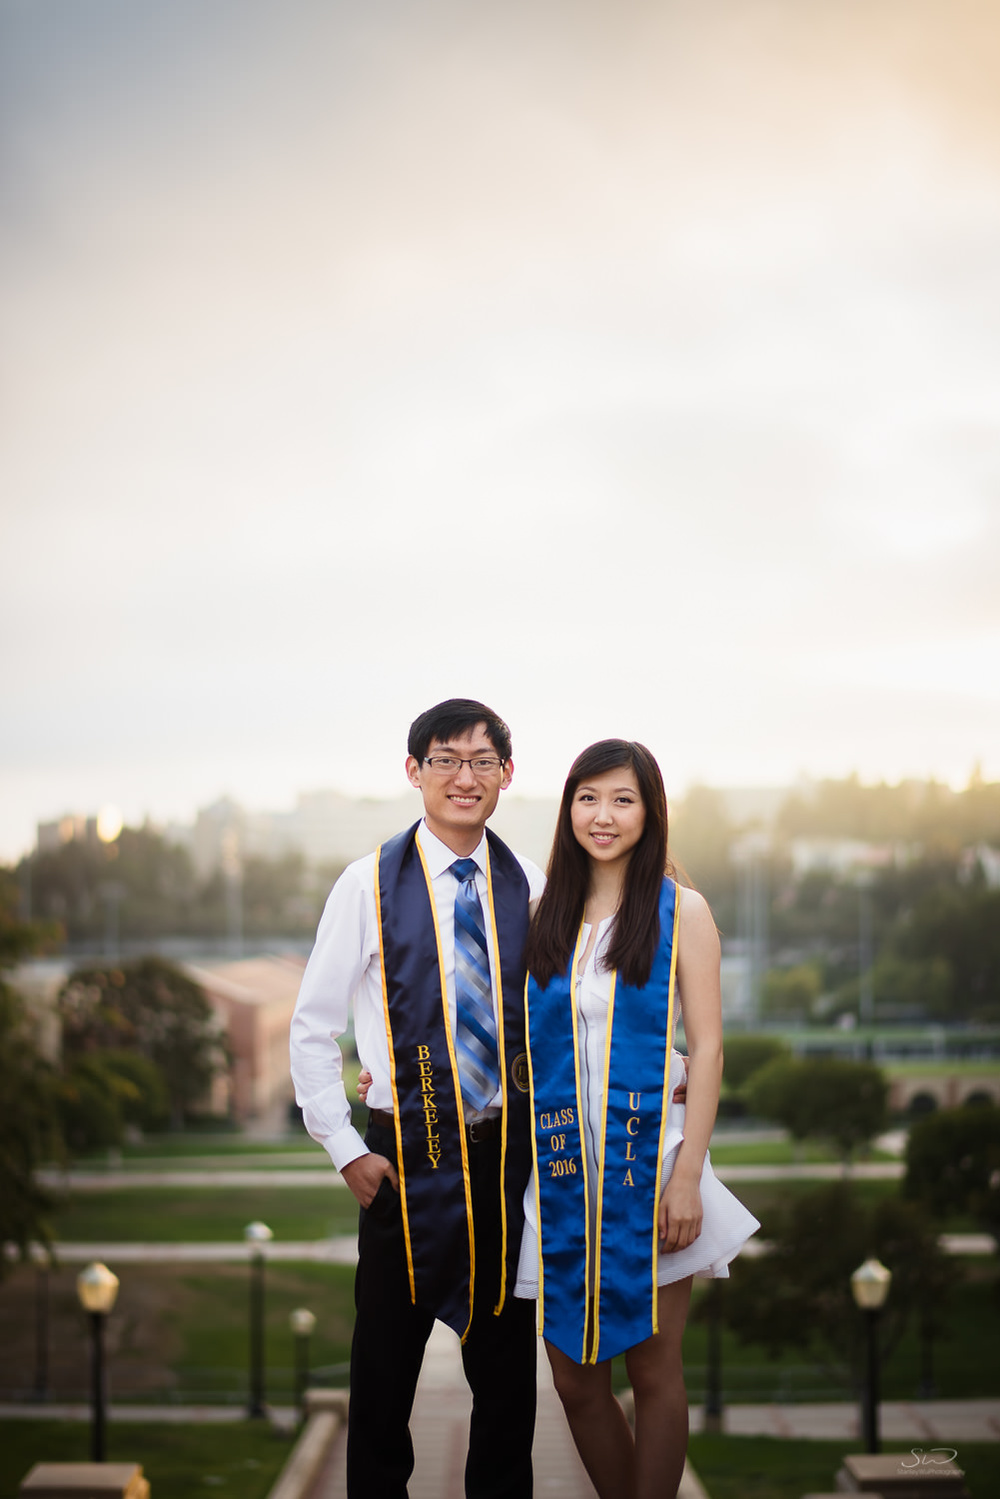 ucla-uc-berkeley-couple-grad-19.jpg